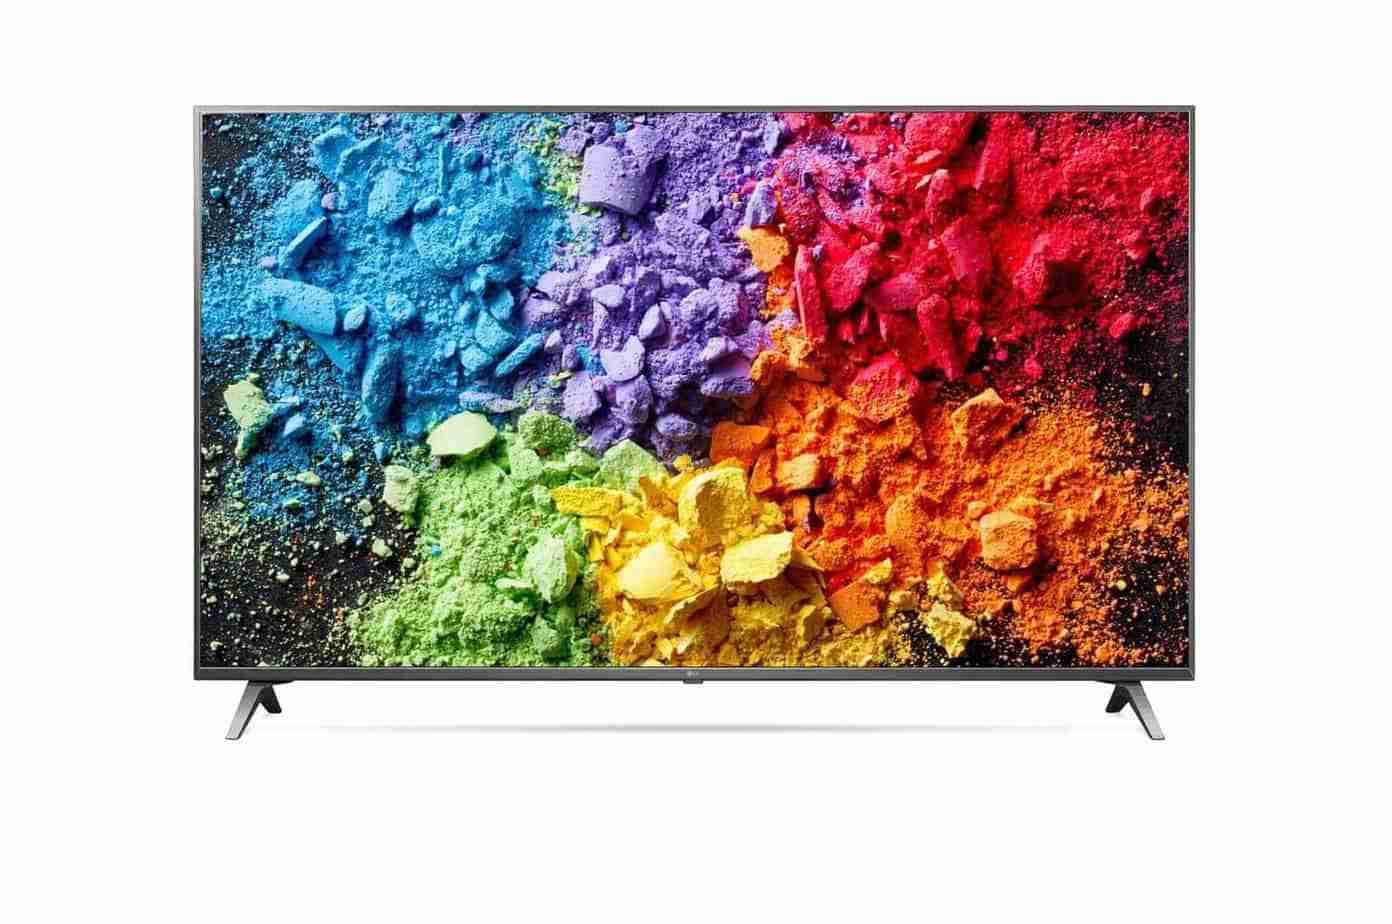 LG OLED ThinQ AI 2018 4k tv what is smart intelligence artificial 2